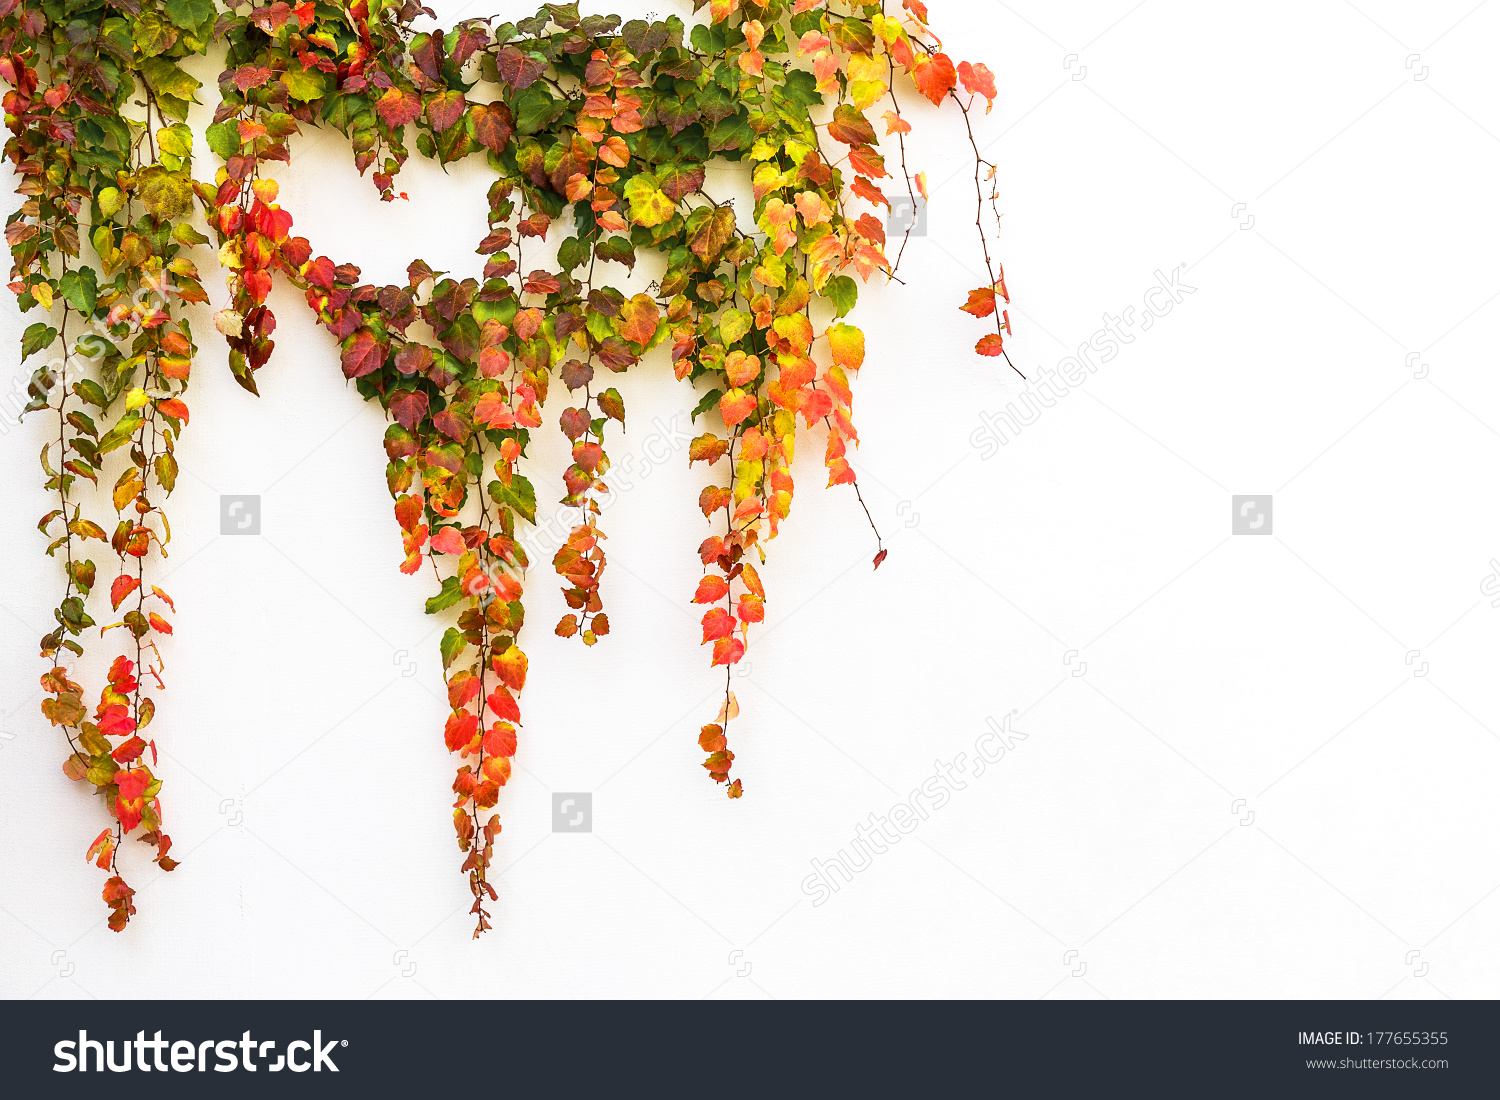 Red Ivy Creeper Leaves On White Stock Photo 177655355.